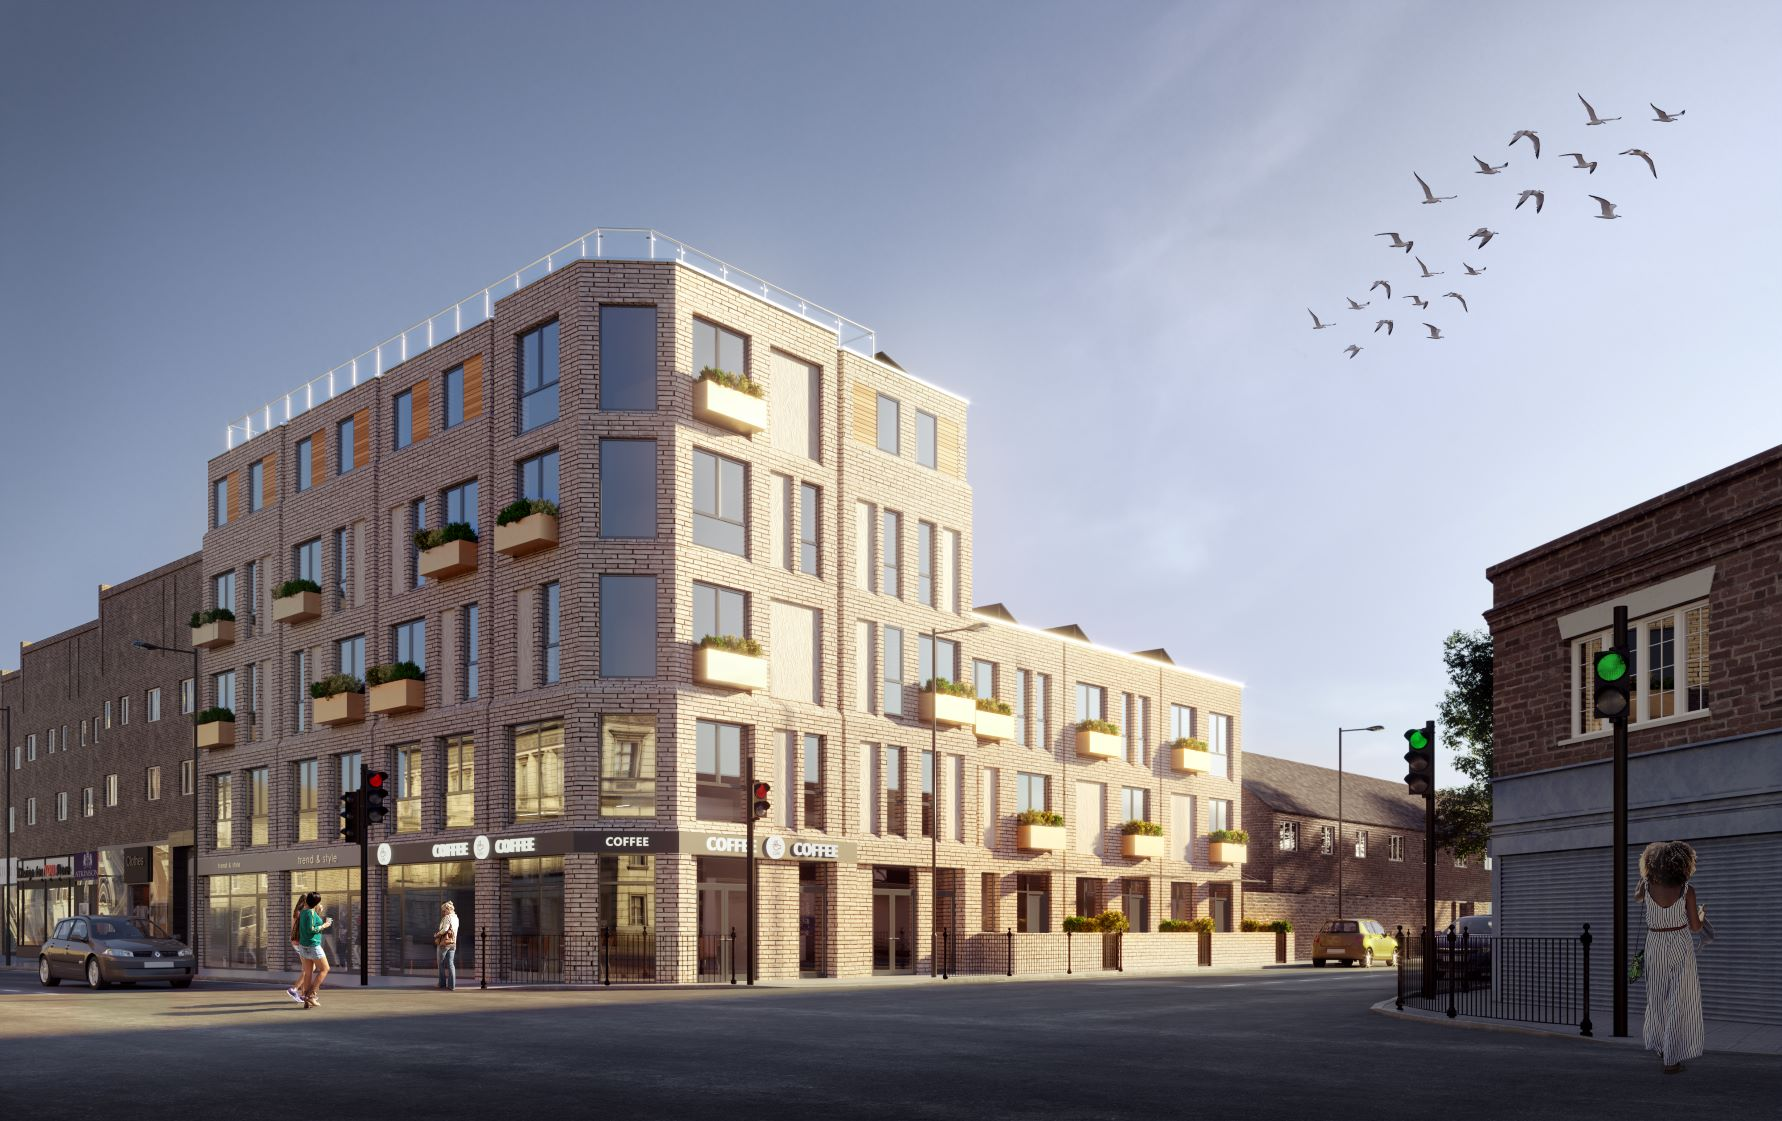 New builds: Homes on the market in London this week, from a former Bermondsey pub to a Deptford tower with City views